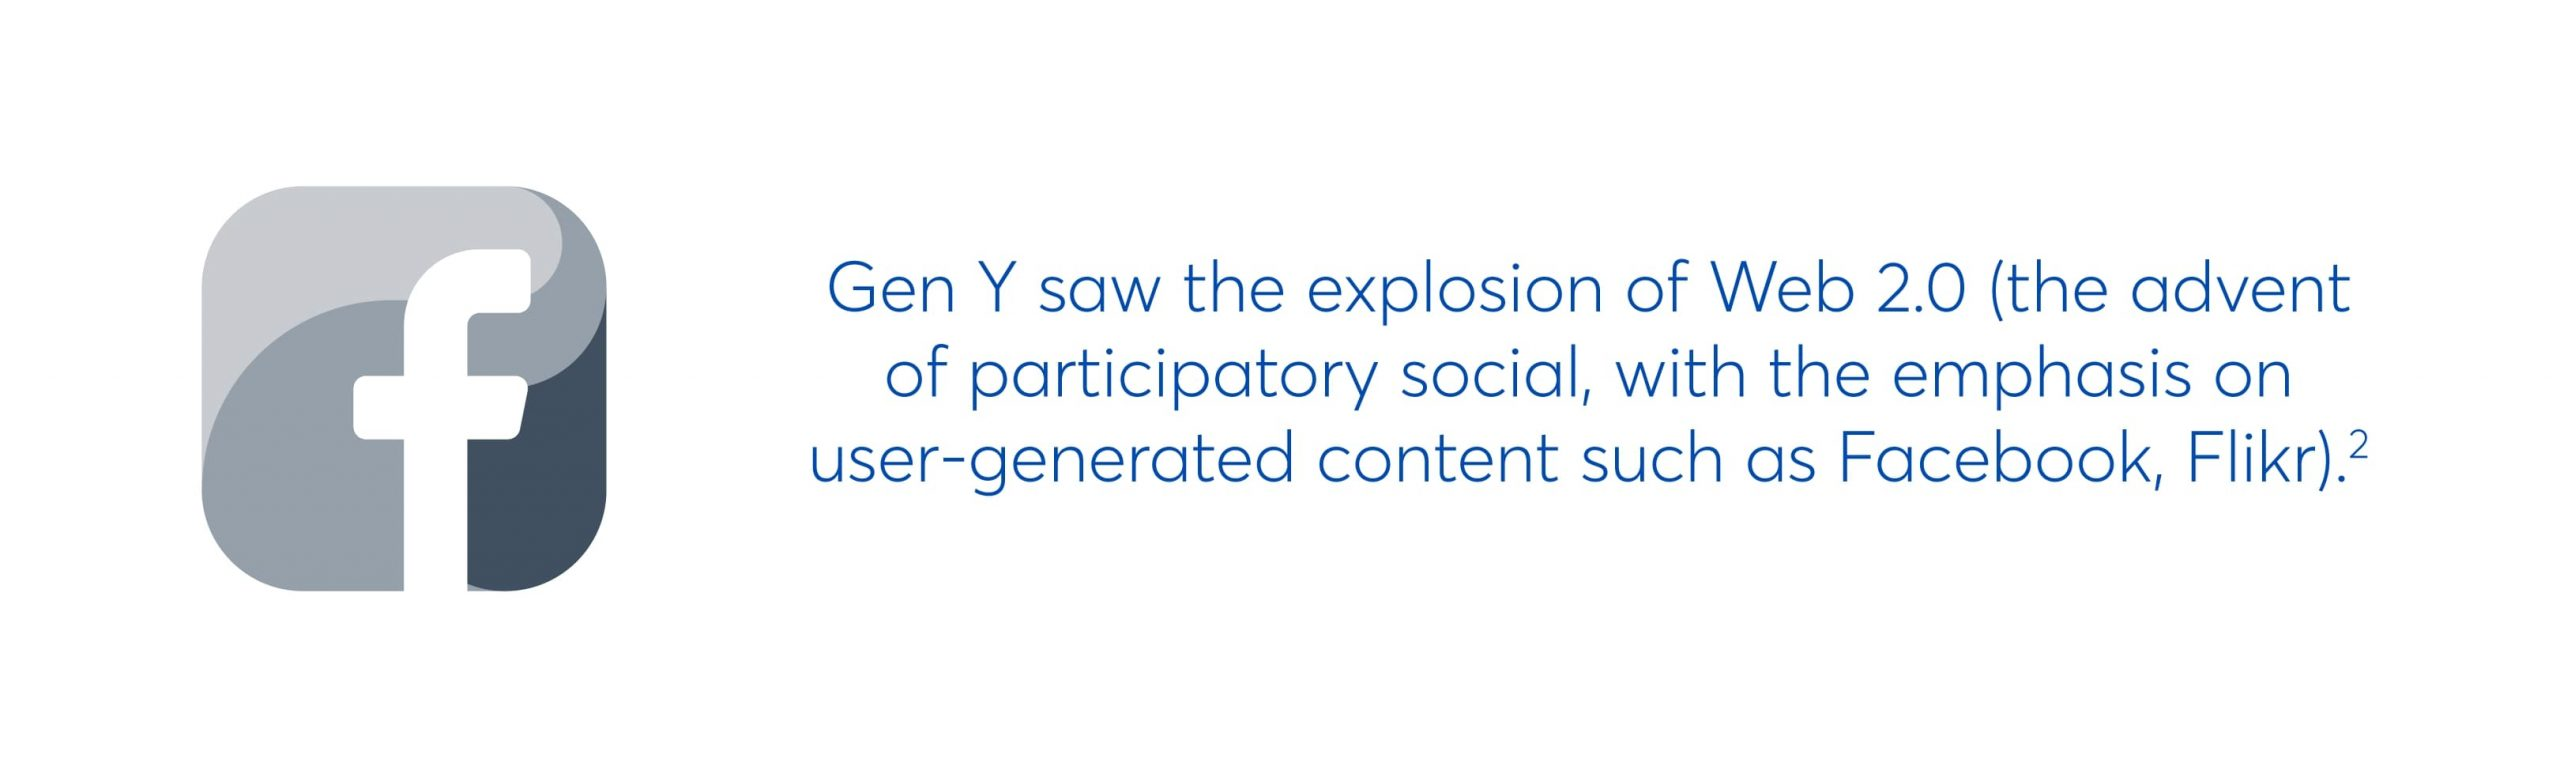 gen y saw the explosion of web 2.0 (the advent of participatory social, with the emphasis on user-generated content such as facebook, flickr)